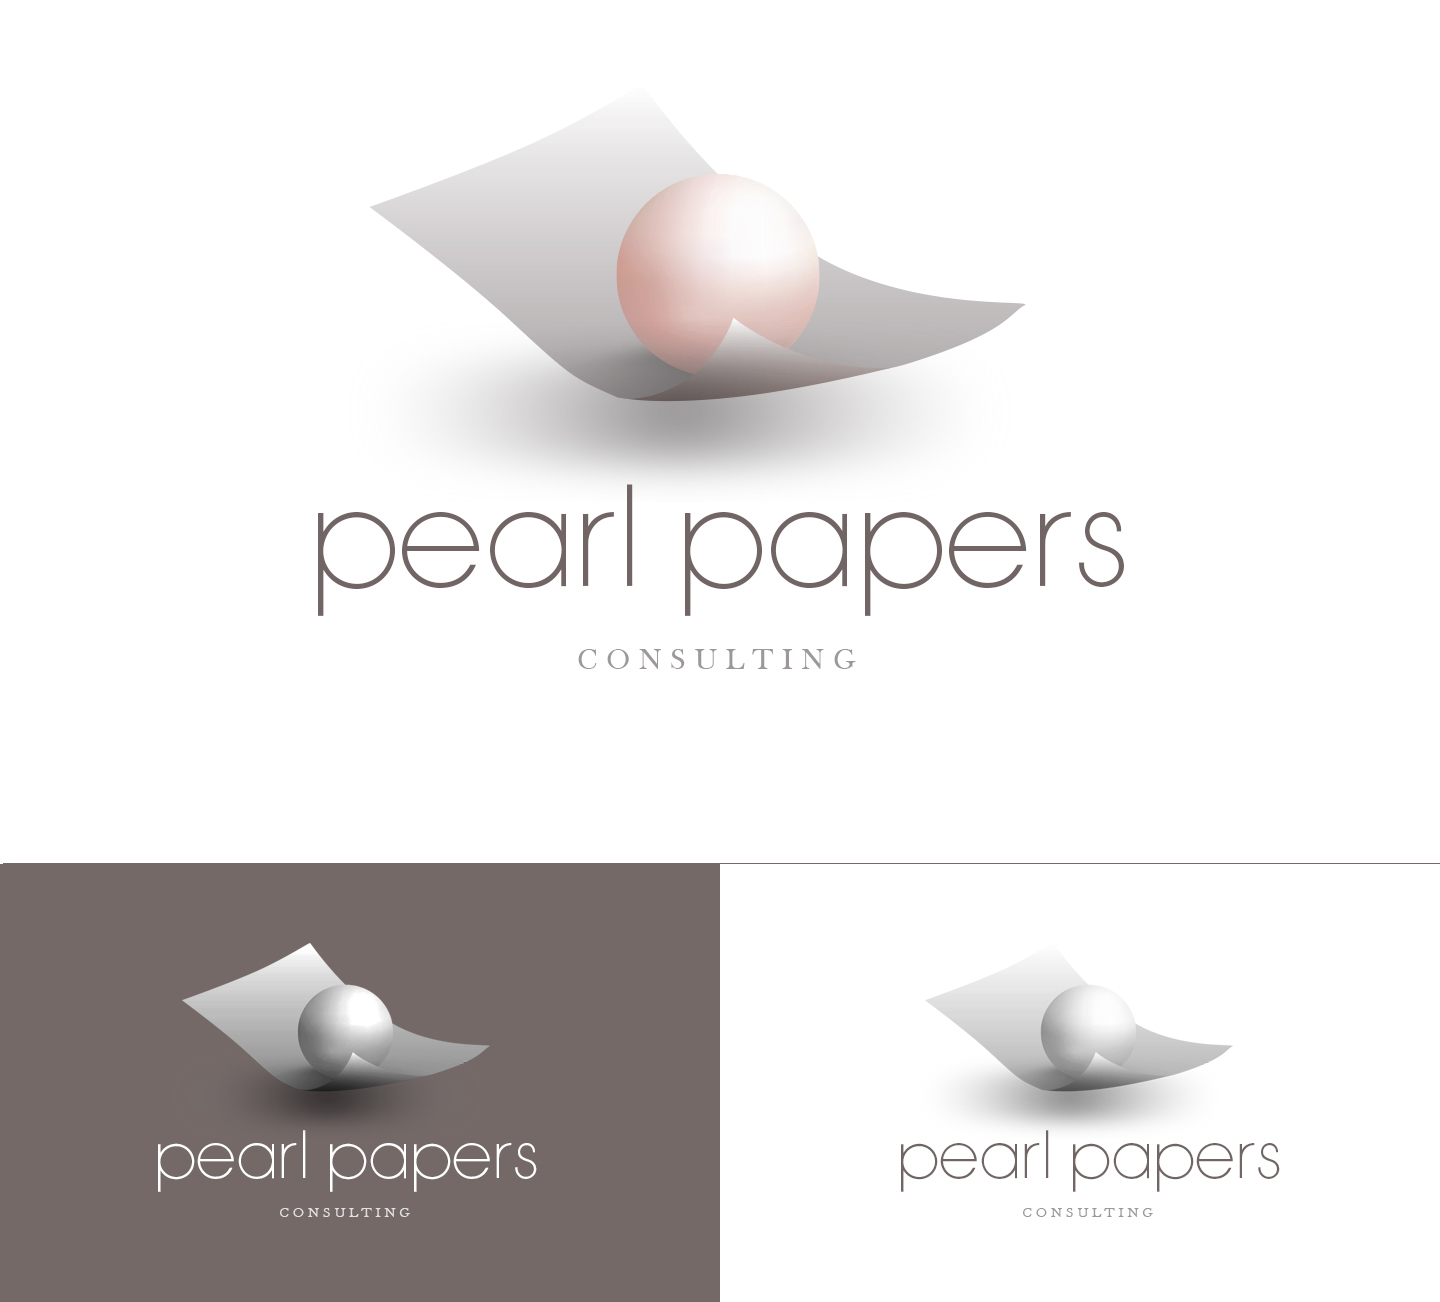 pearl-papers1.jpg